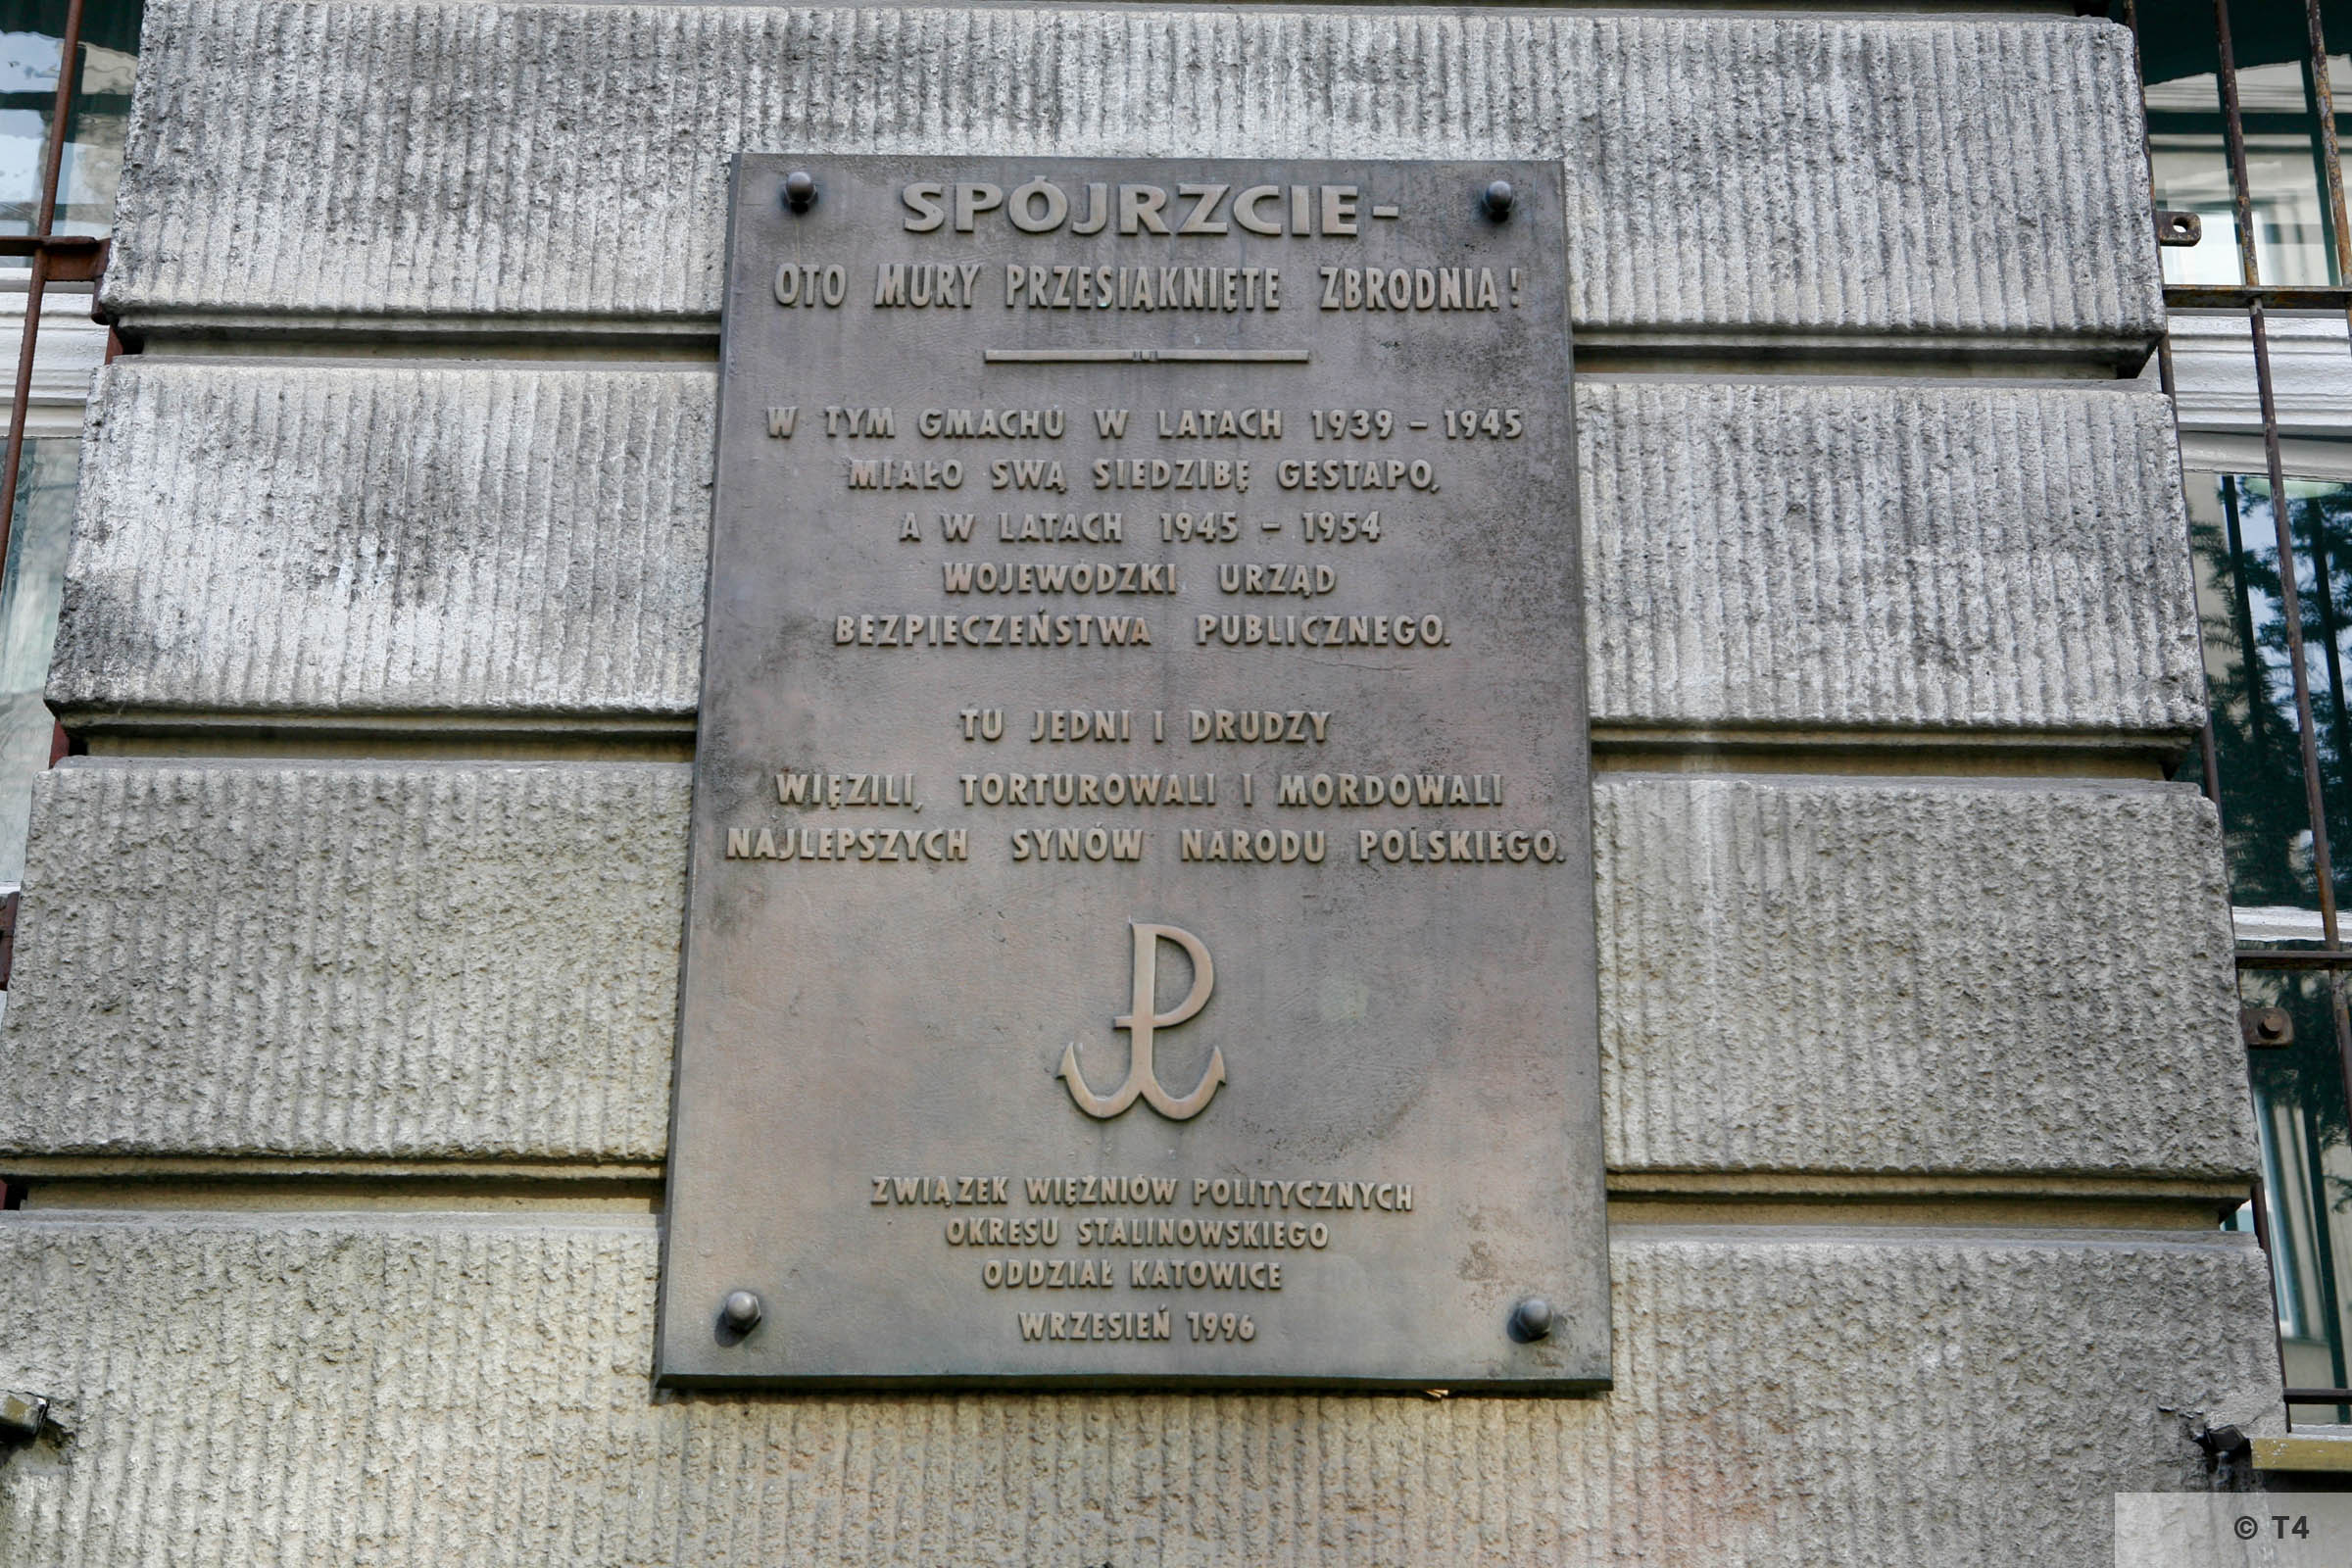 Memorial on the building of the former Gestapo Headquarters in Katowice. 2006 T4 3715